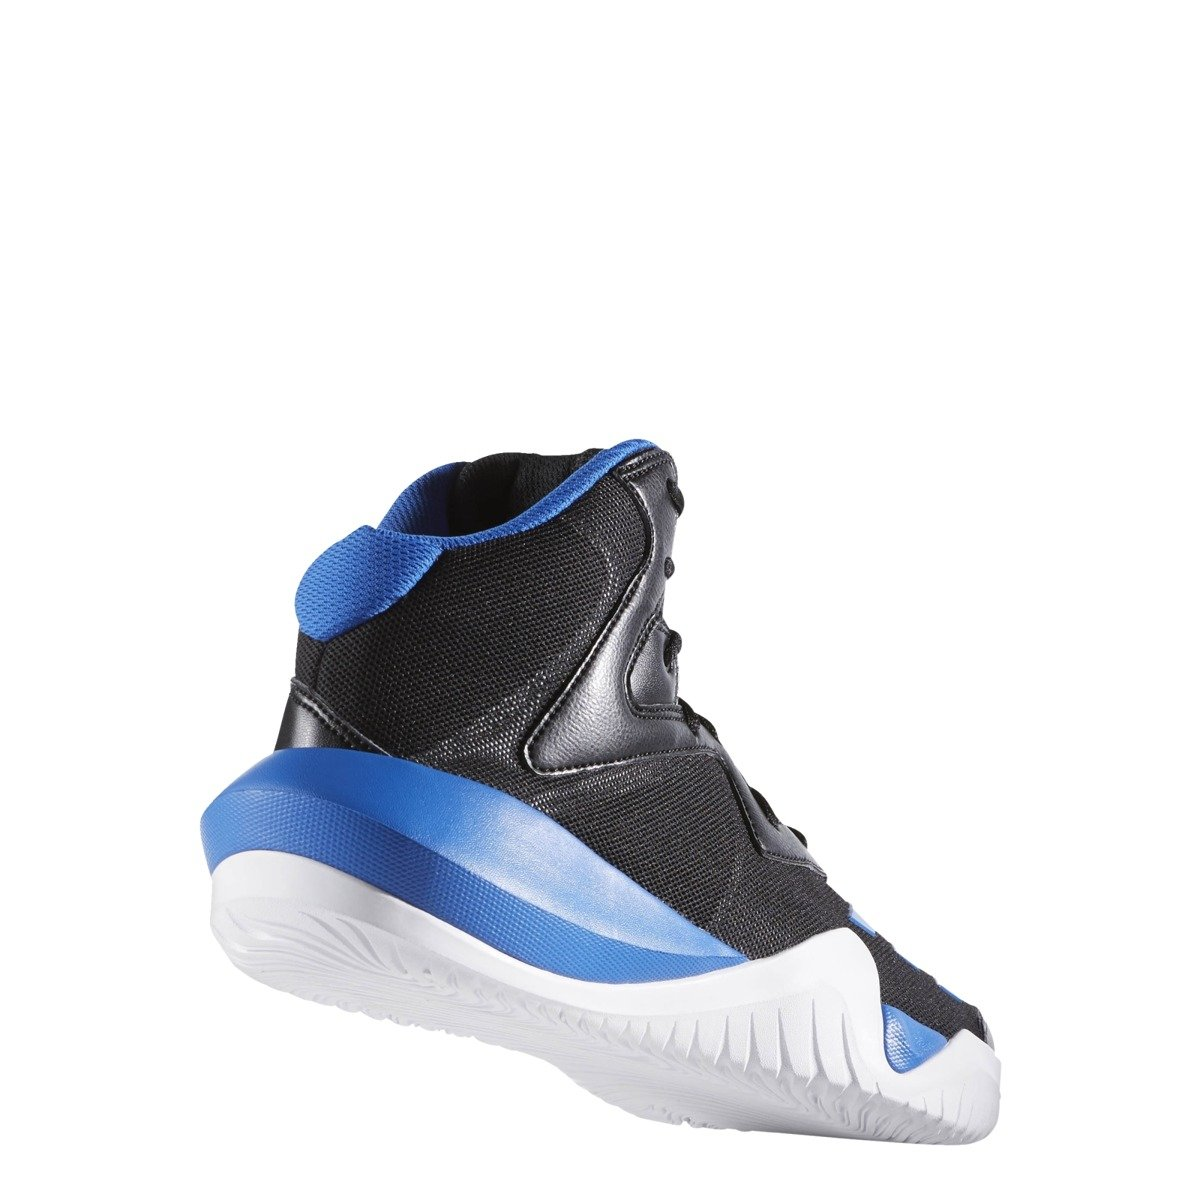 adidas basketball shoes. adidas crazy team 2017 basketball shoes - bb8253 g